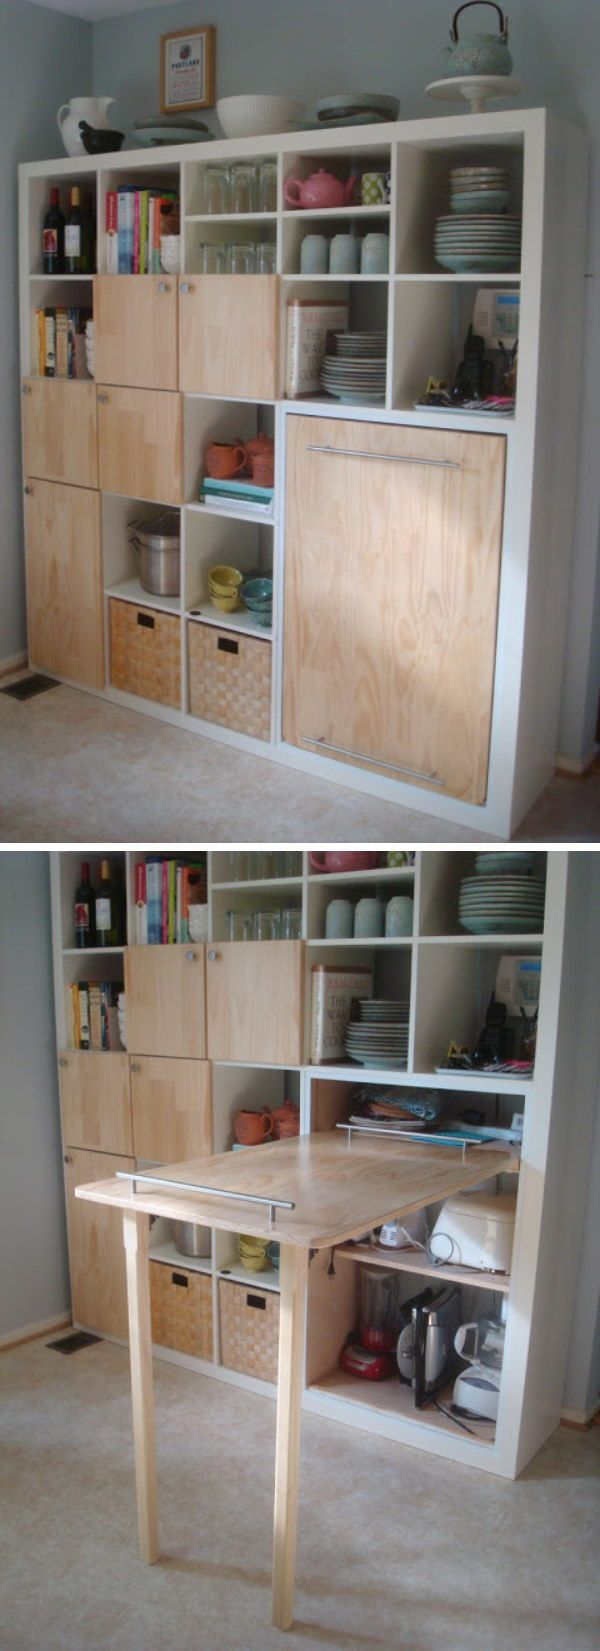 Ikea Life Hacks Küche Life Hacks For Living Large In Small Spaces Organization Around